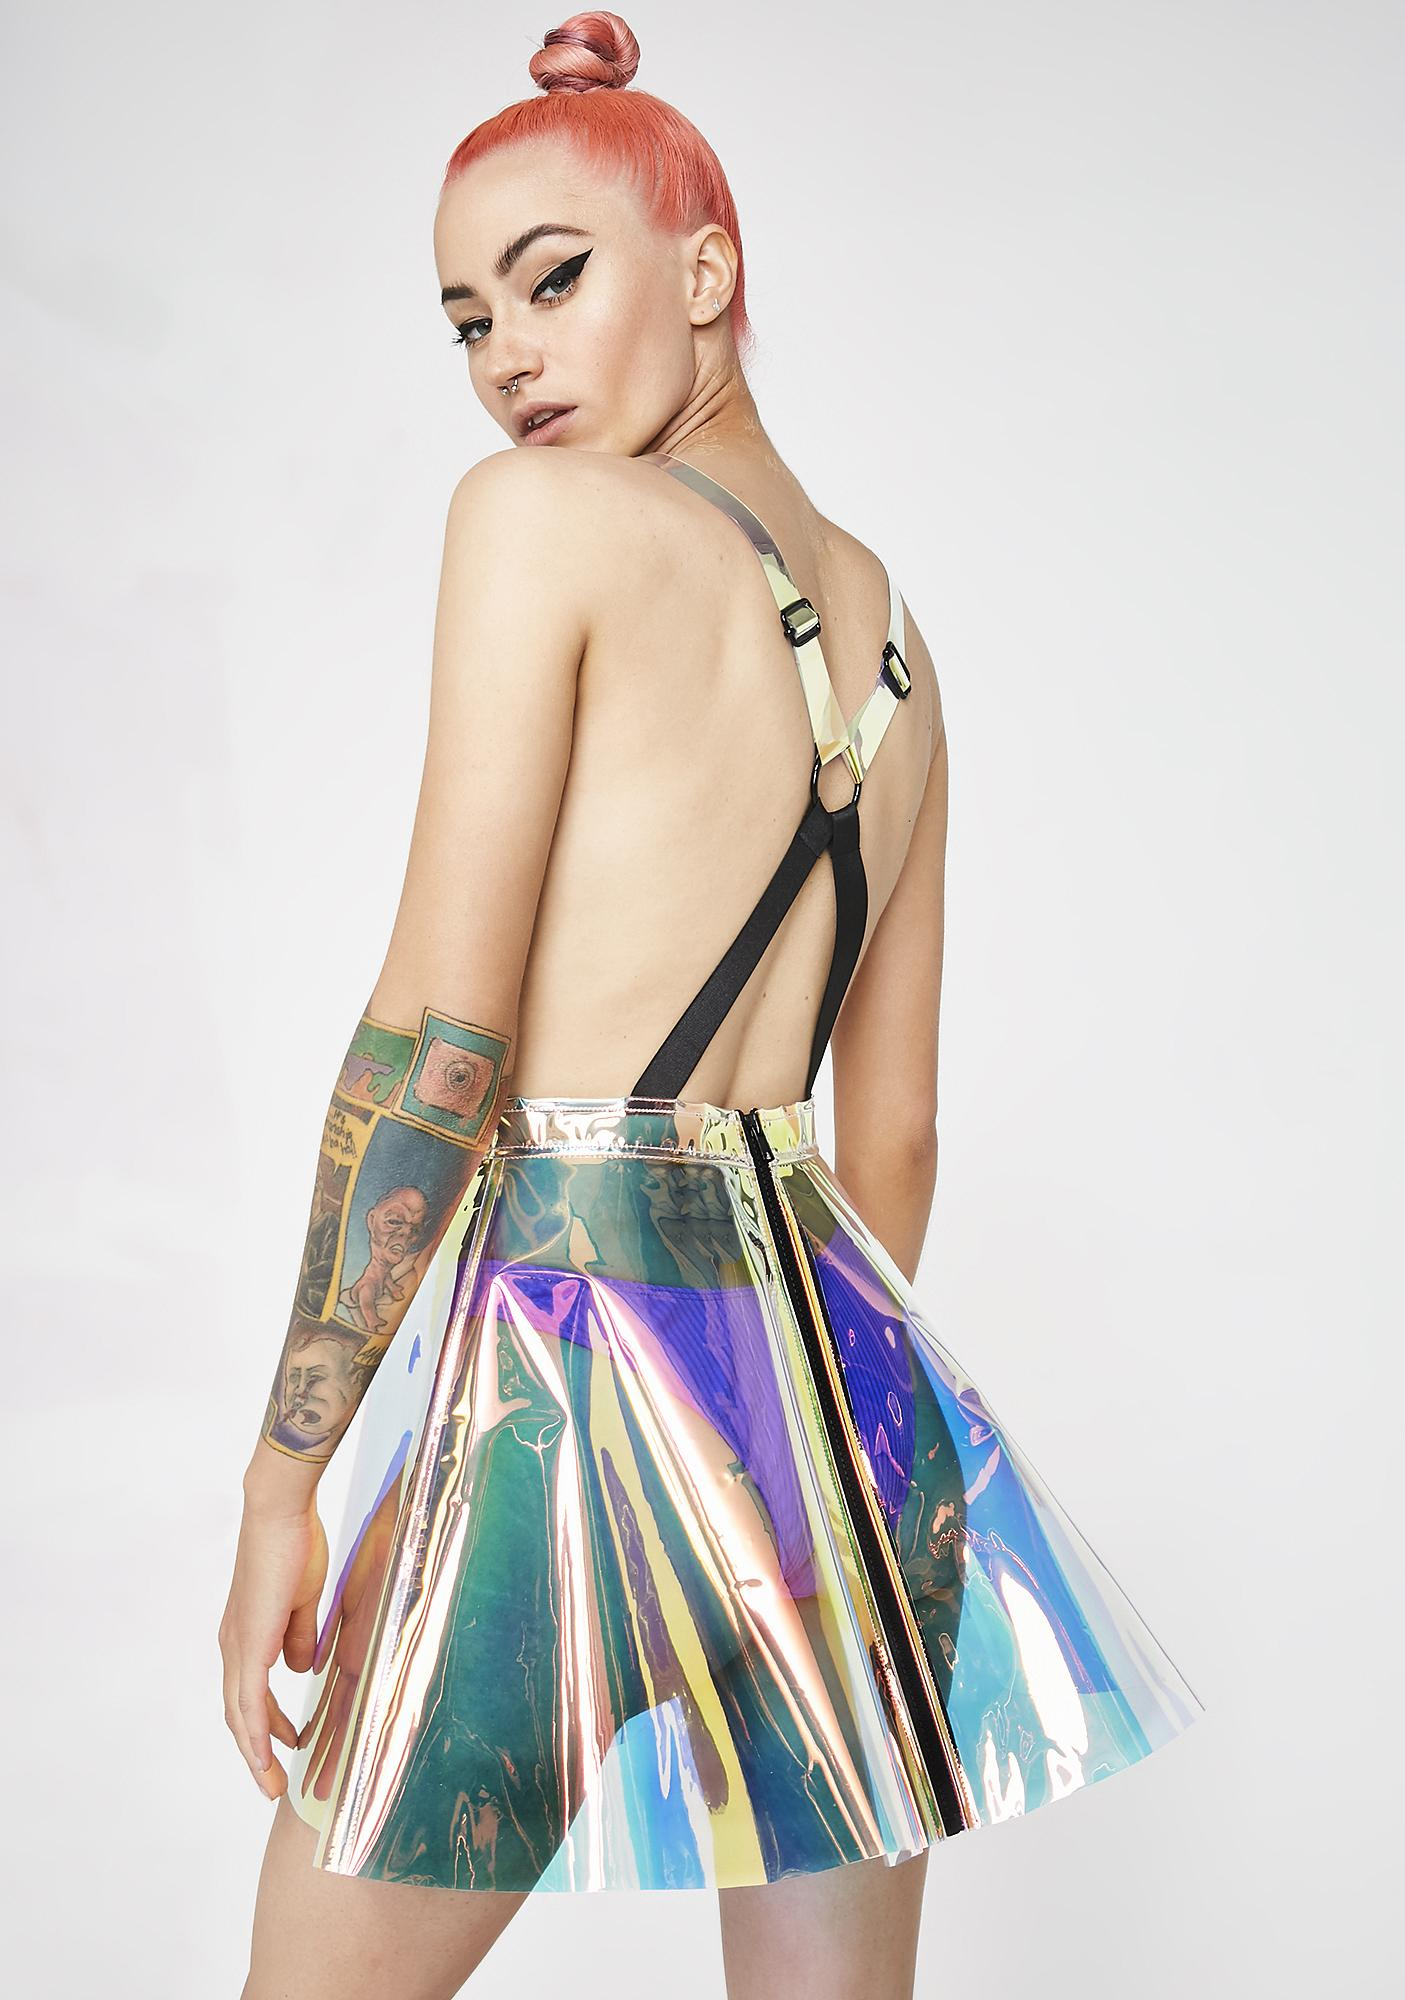 Club Exx Space Gurl Hologram Overall Dress